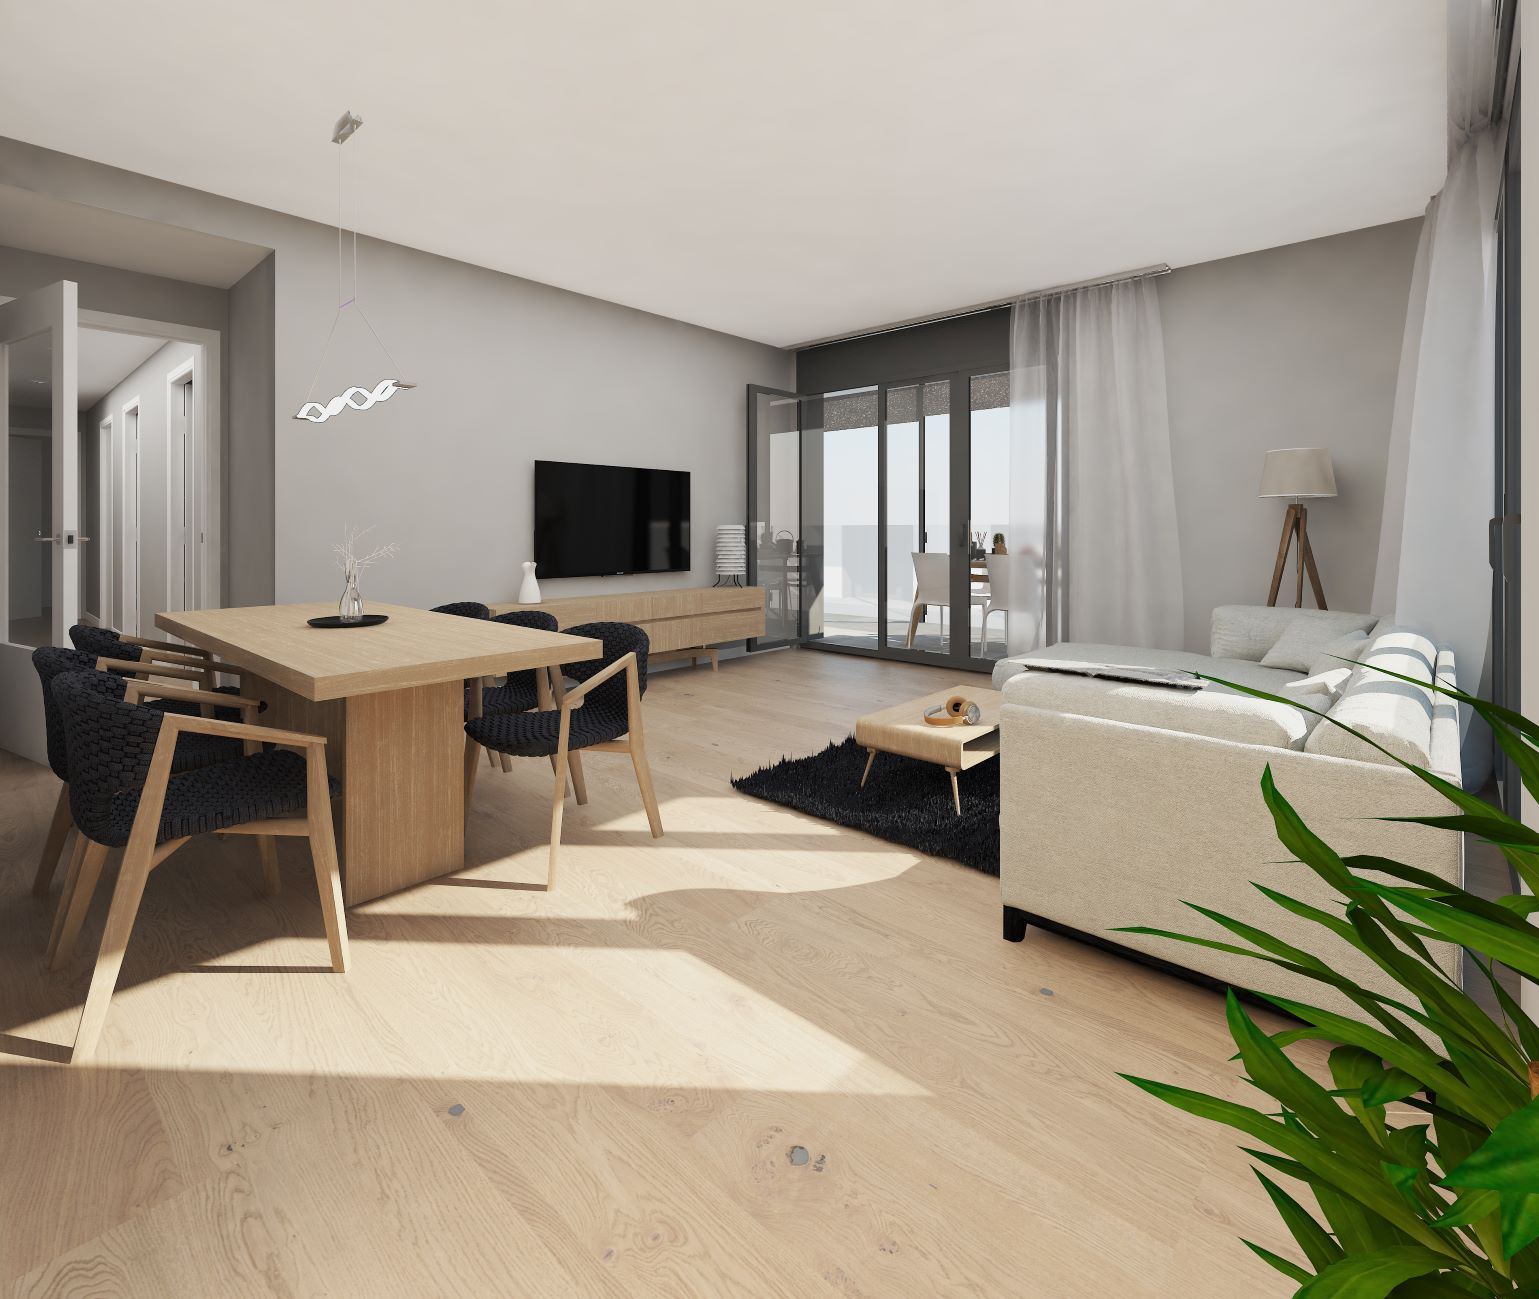 Apartment in Barcelona - poble nou. Private parking, Private swimming pool.3 bedrooms. For sale: 484.000 €.